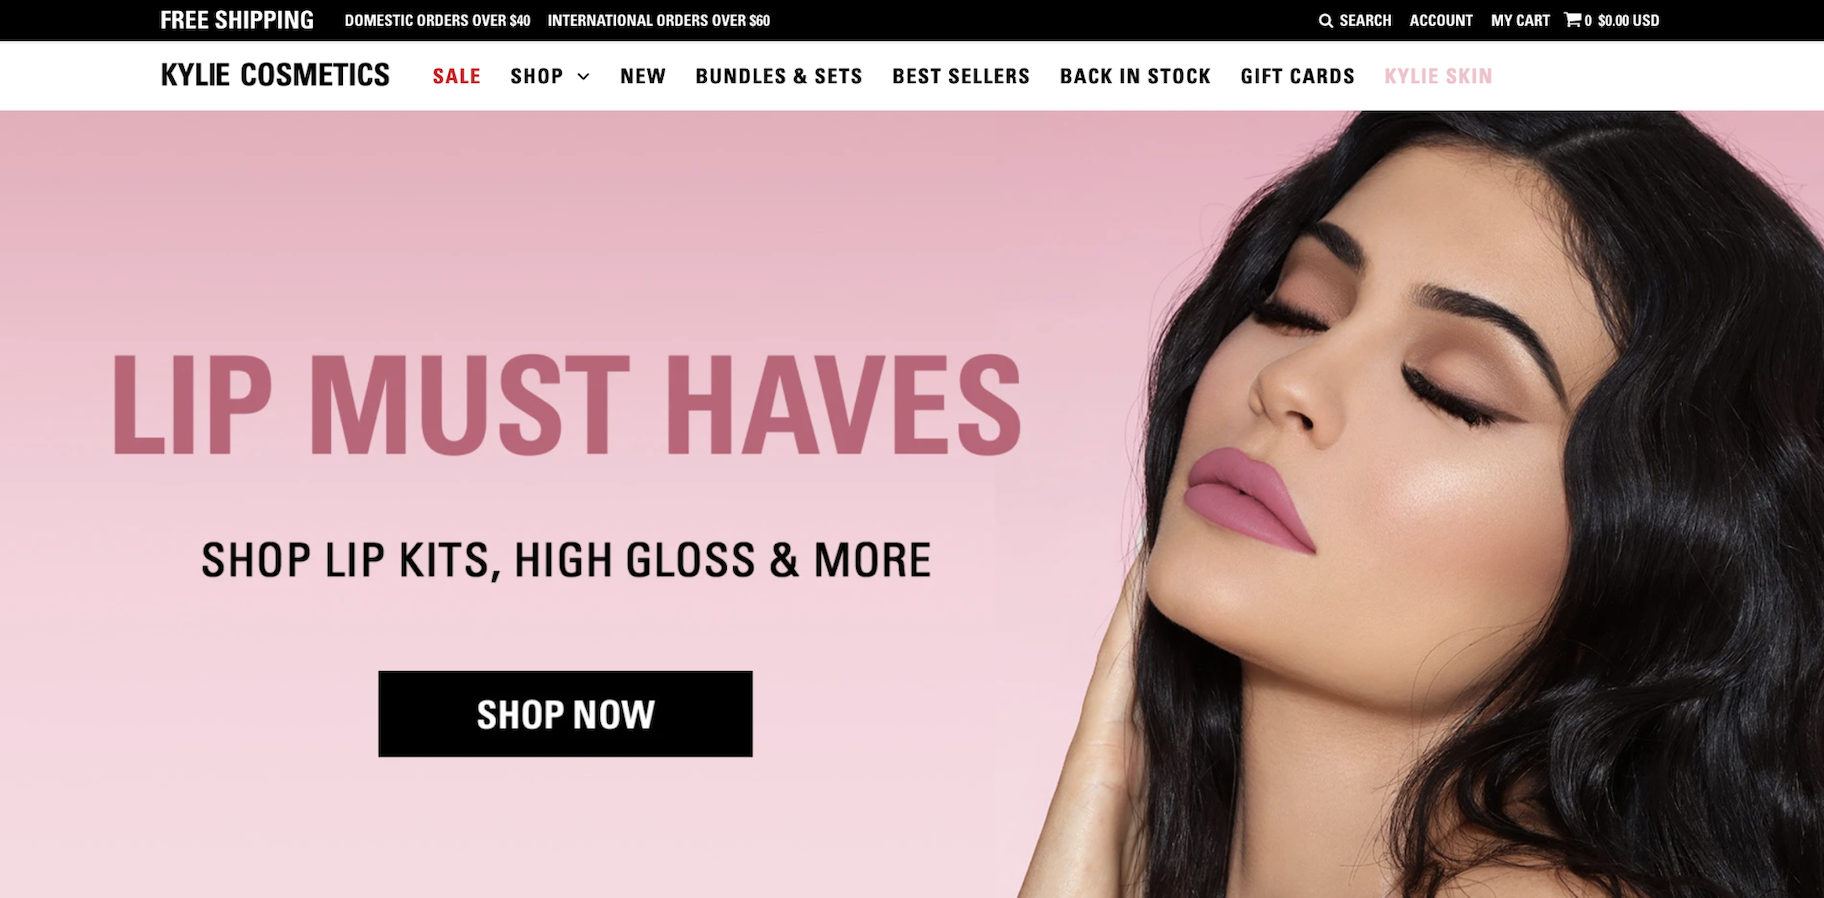 Ecommerce Shipping Best Practices: Kylie Cosmetics